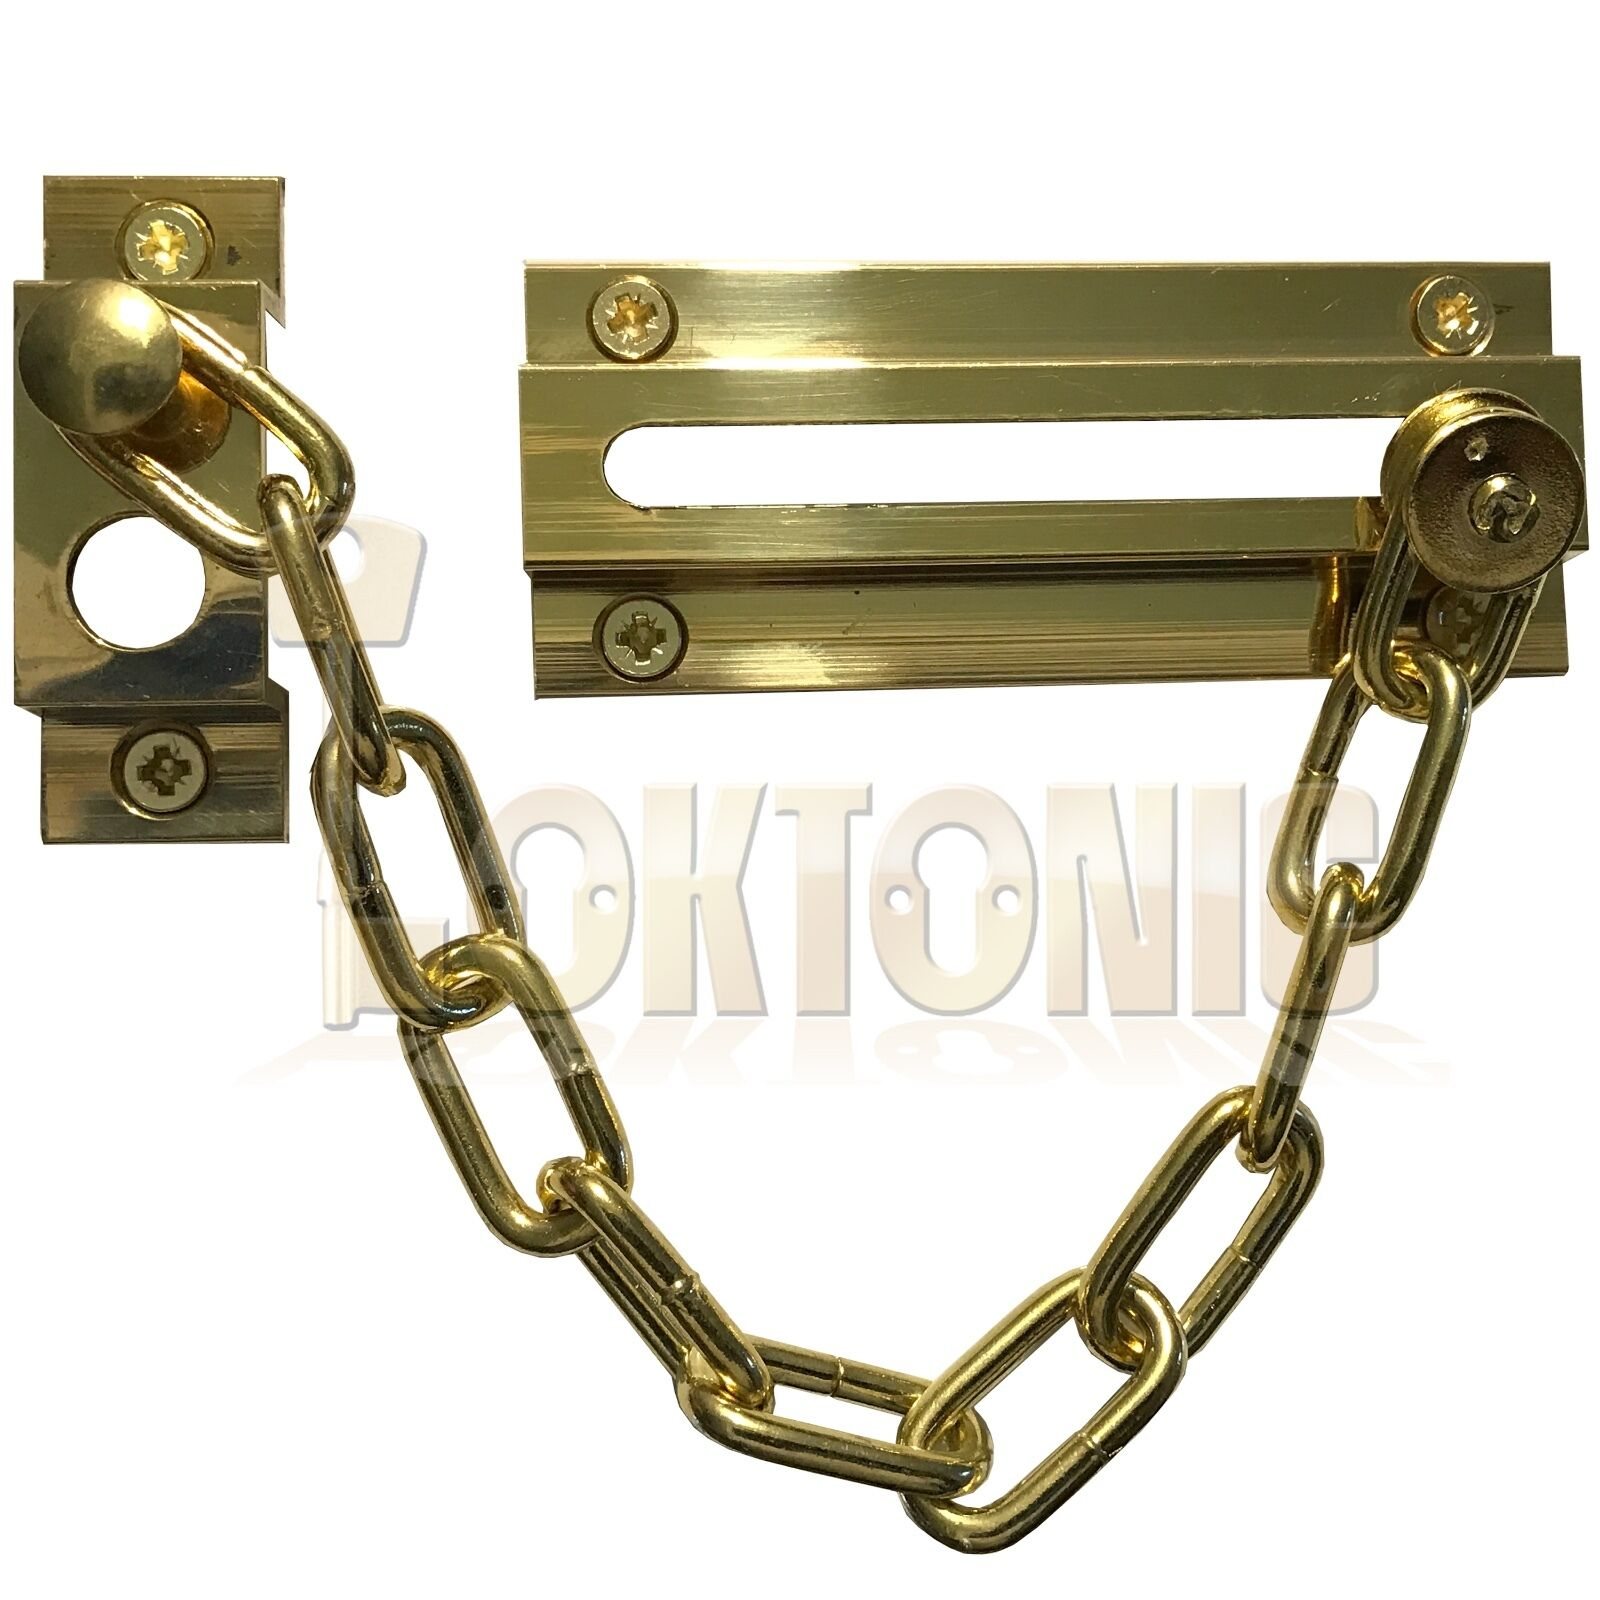 Strong Security Door Chain Heavy Duty Brass Safety Guard Lock Catch Loktonic